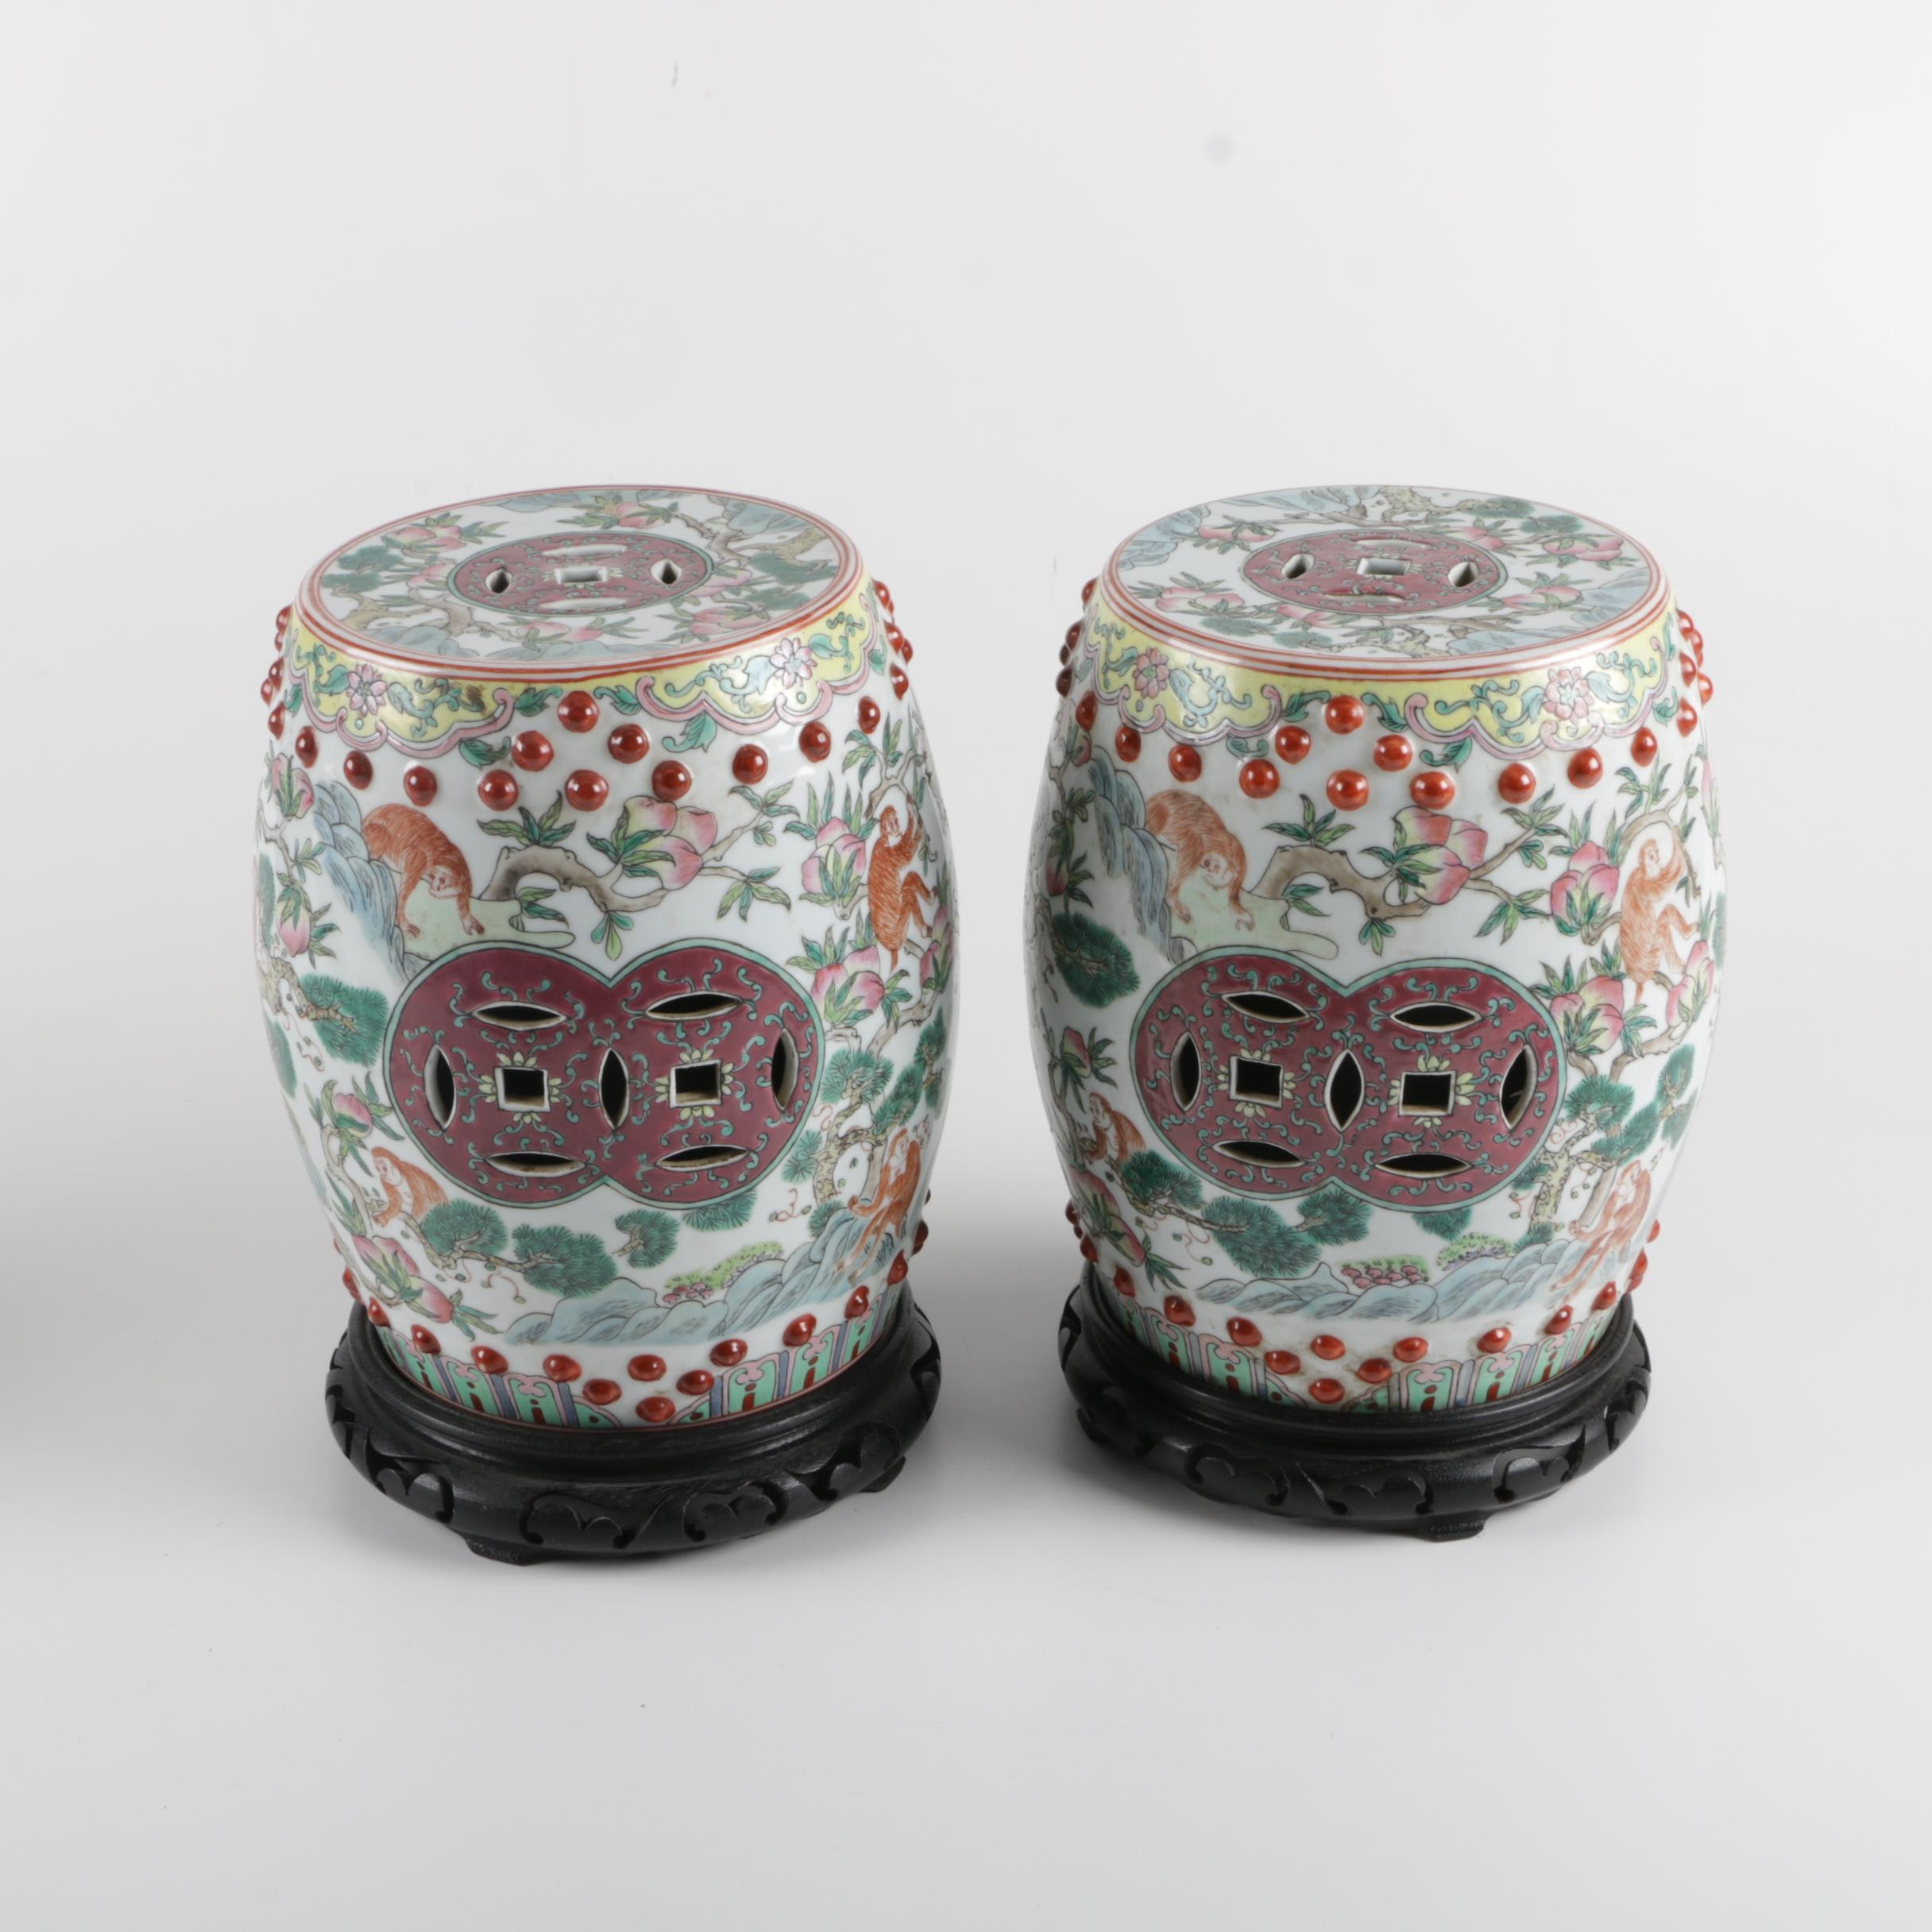 Diminutive Chinese Garden Stools with Wood Pedestal